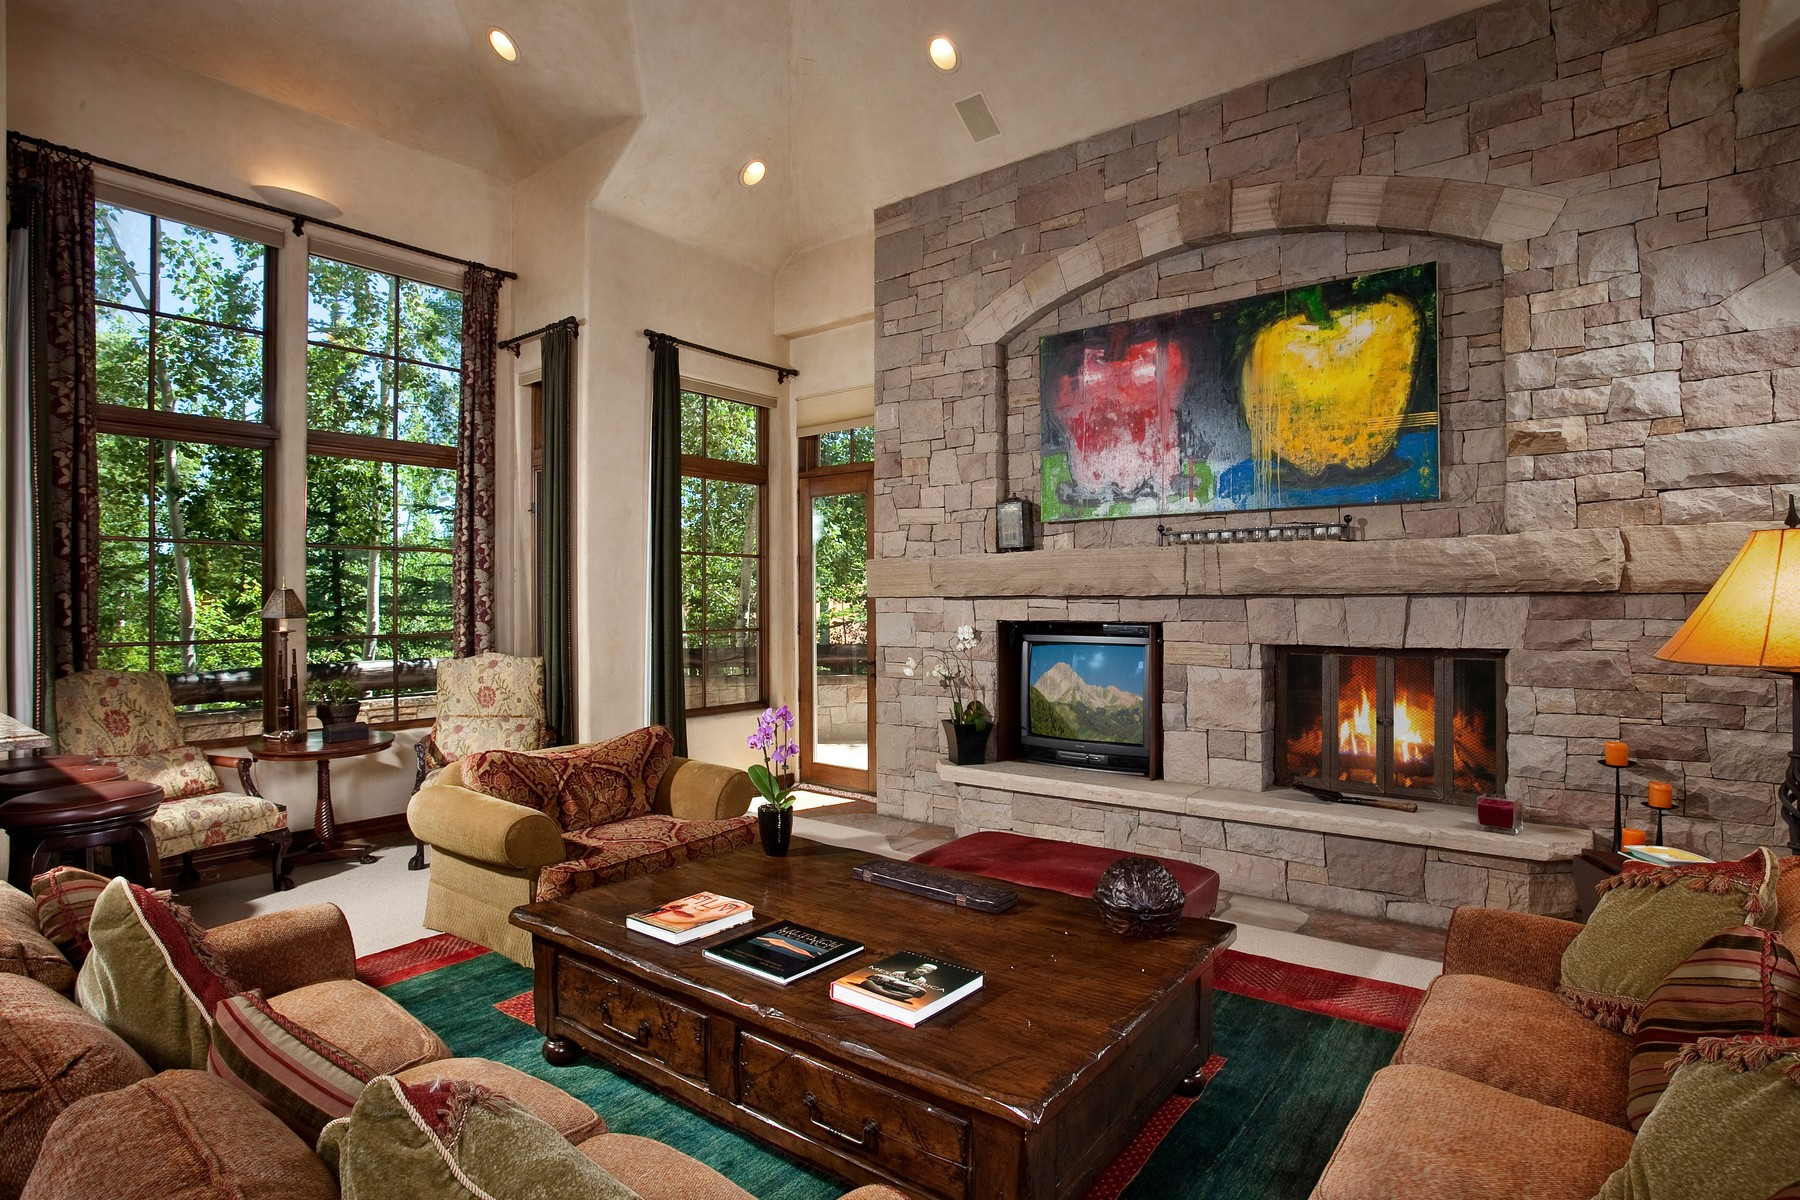 Single Family Home for Sale at Ski-in / Ski-out Mountain Home 27 Timber Ridge Snowmass Village, Colorado, 81615 United States